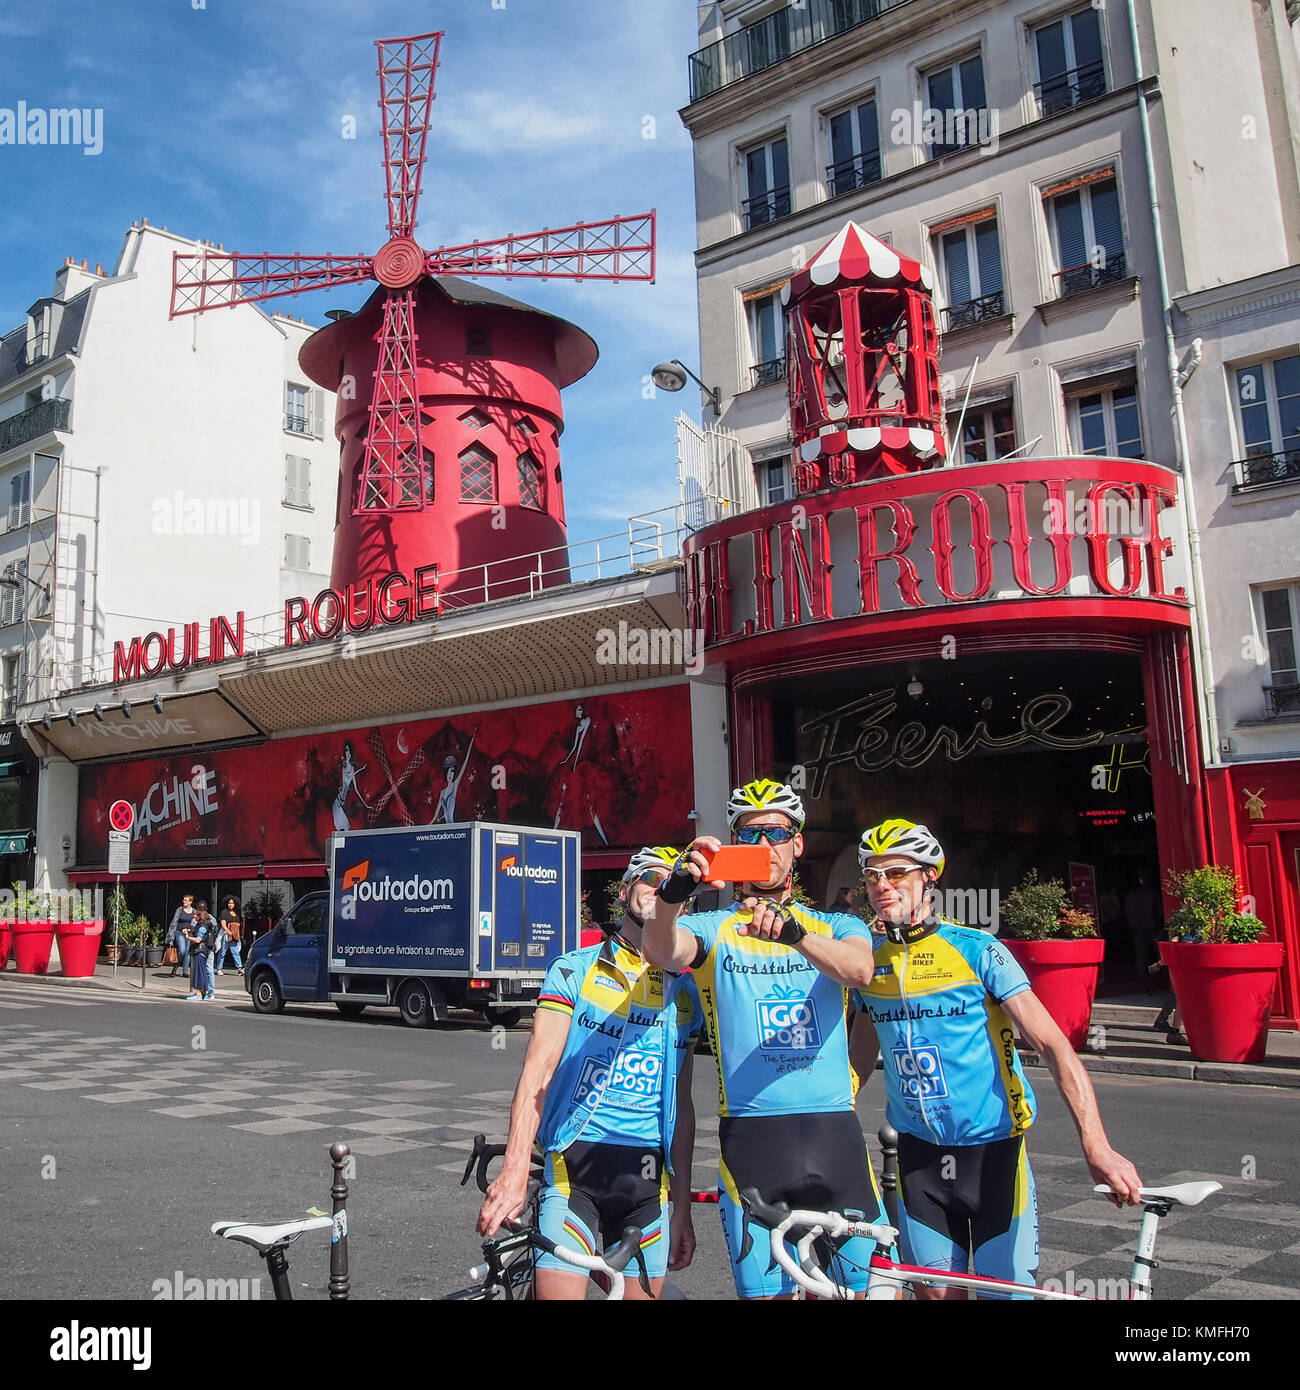 PARIS, FRANCE-MAY 6, 2016: Cyclists in the sport uniform do selfie in front of the Moulin Rouge. Moulin Rouge is - Stock Image